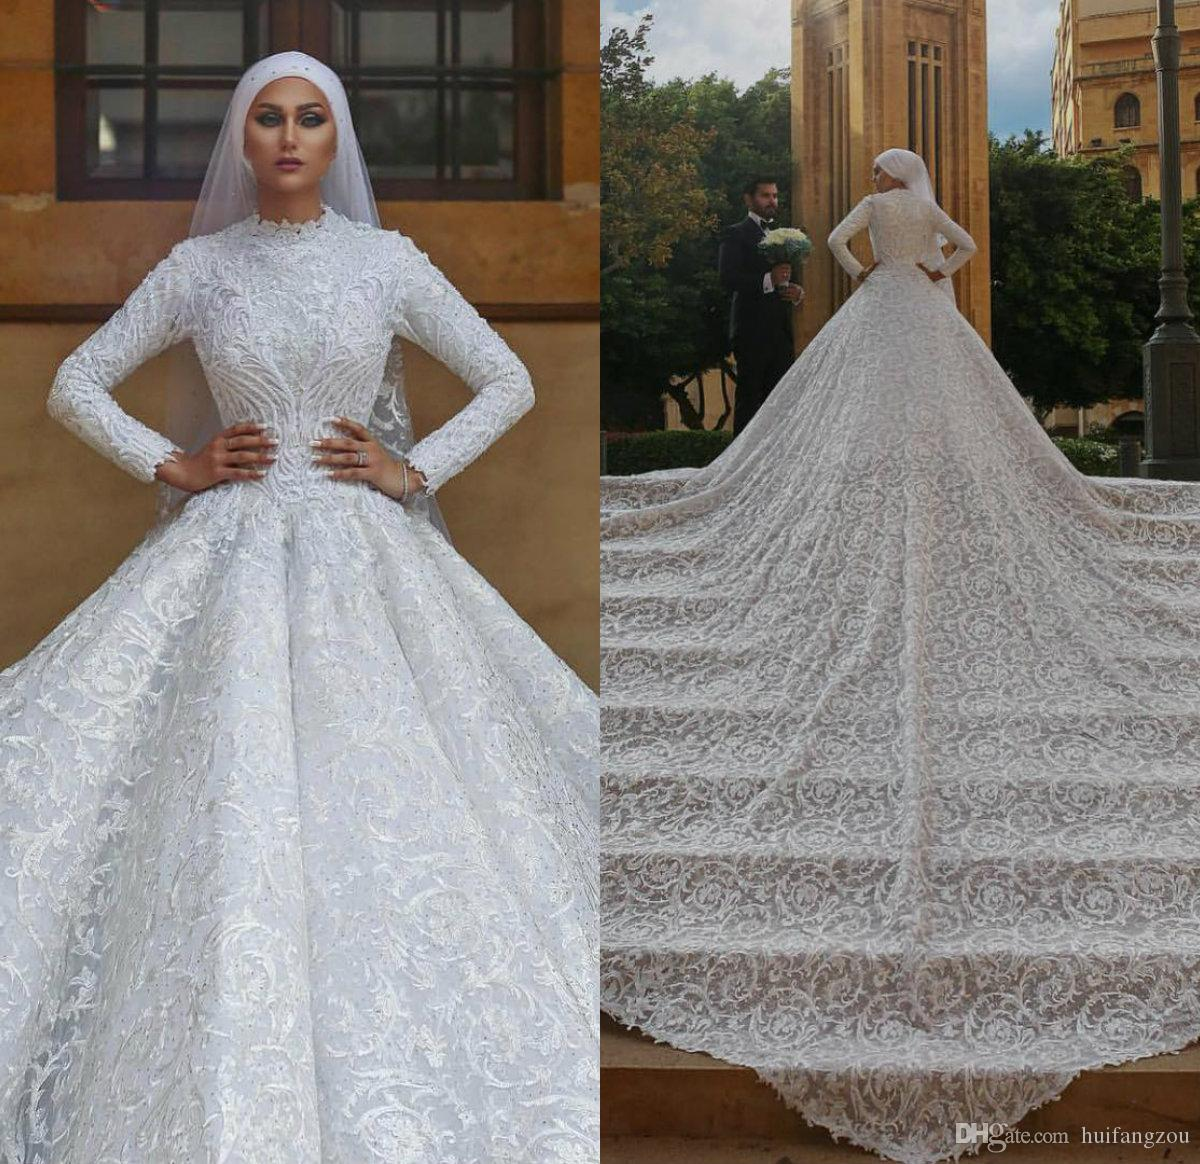 Discount Luxury Muslim Wedding Dresses Lace Floral Appliqued Court Train High Collar Modest Wedding Dress Custom Plus Size Long Sleeve Bridal Gowns Designer Bridal Dresses Gown For Wedding From Huifangzou 314 37 Dhgate Com